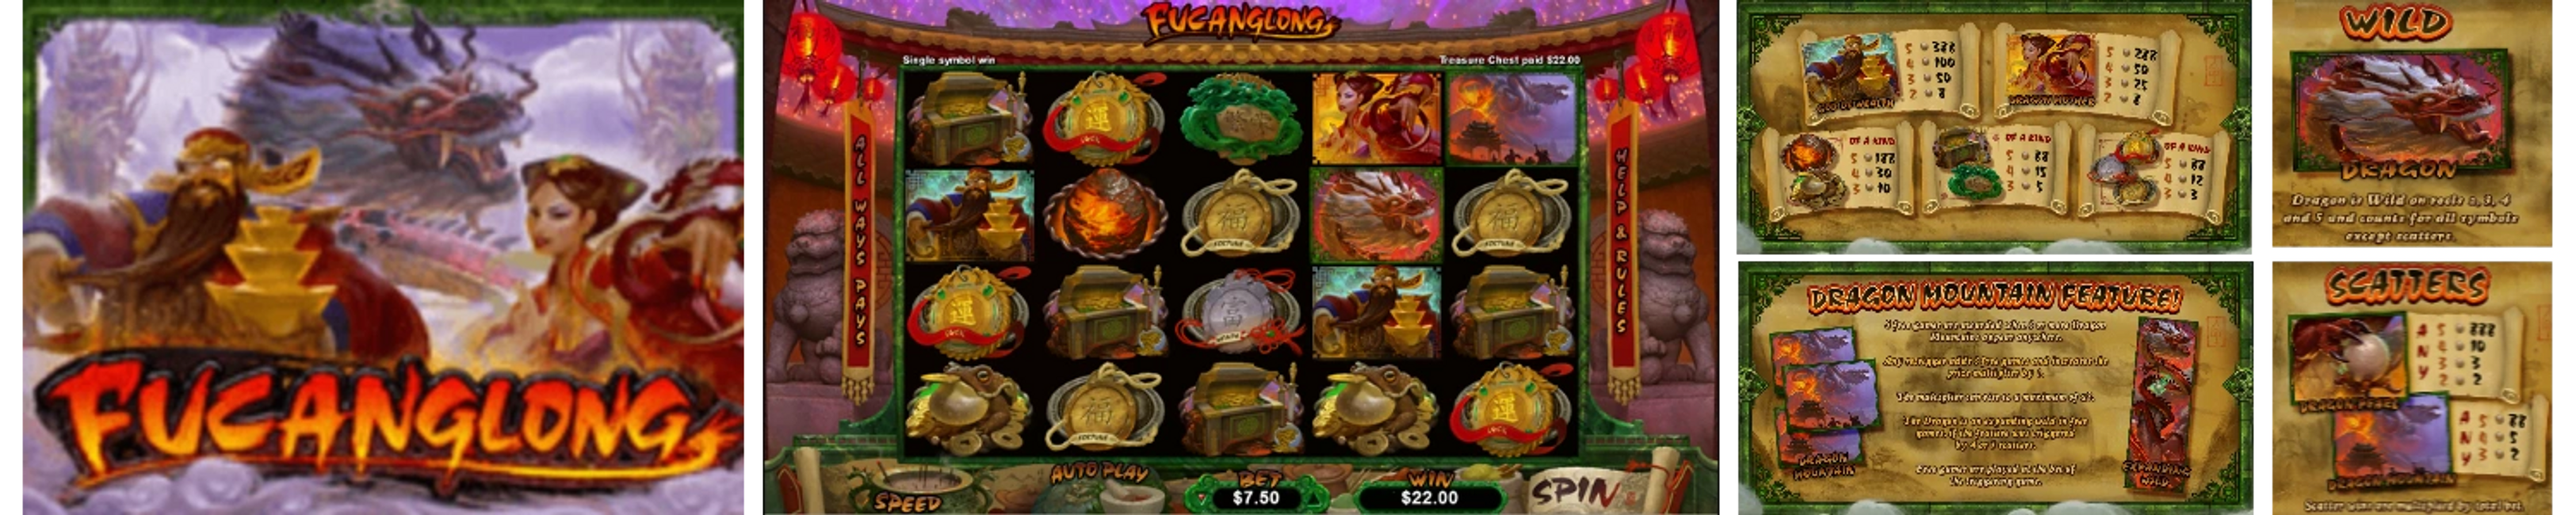 Fucanglong Online Video Slot Review